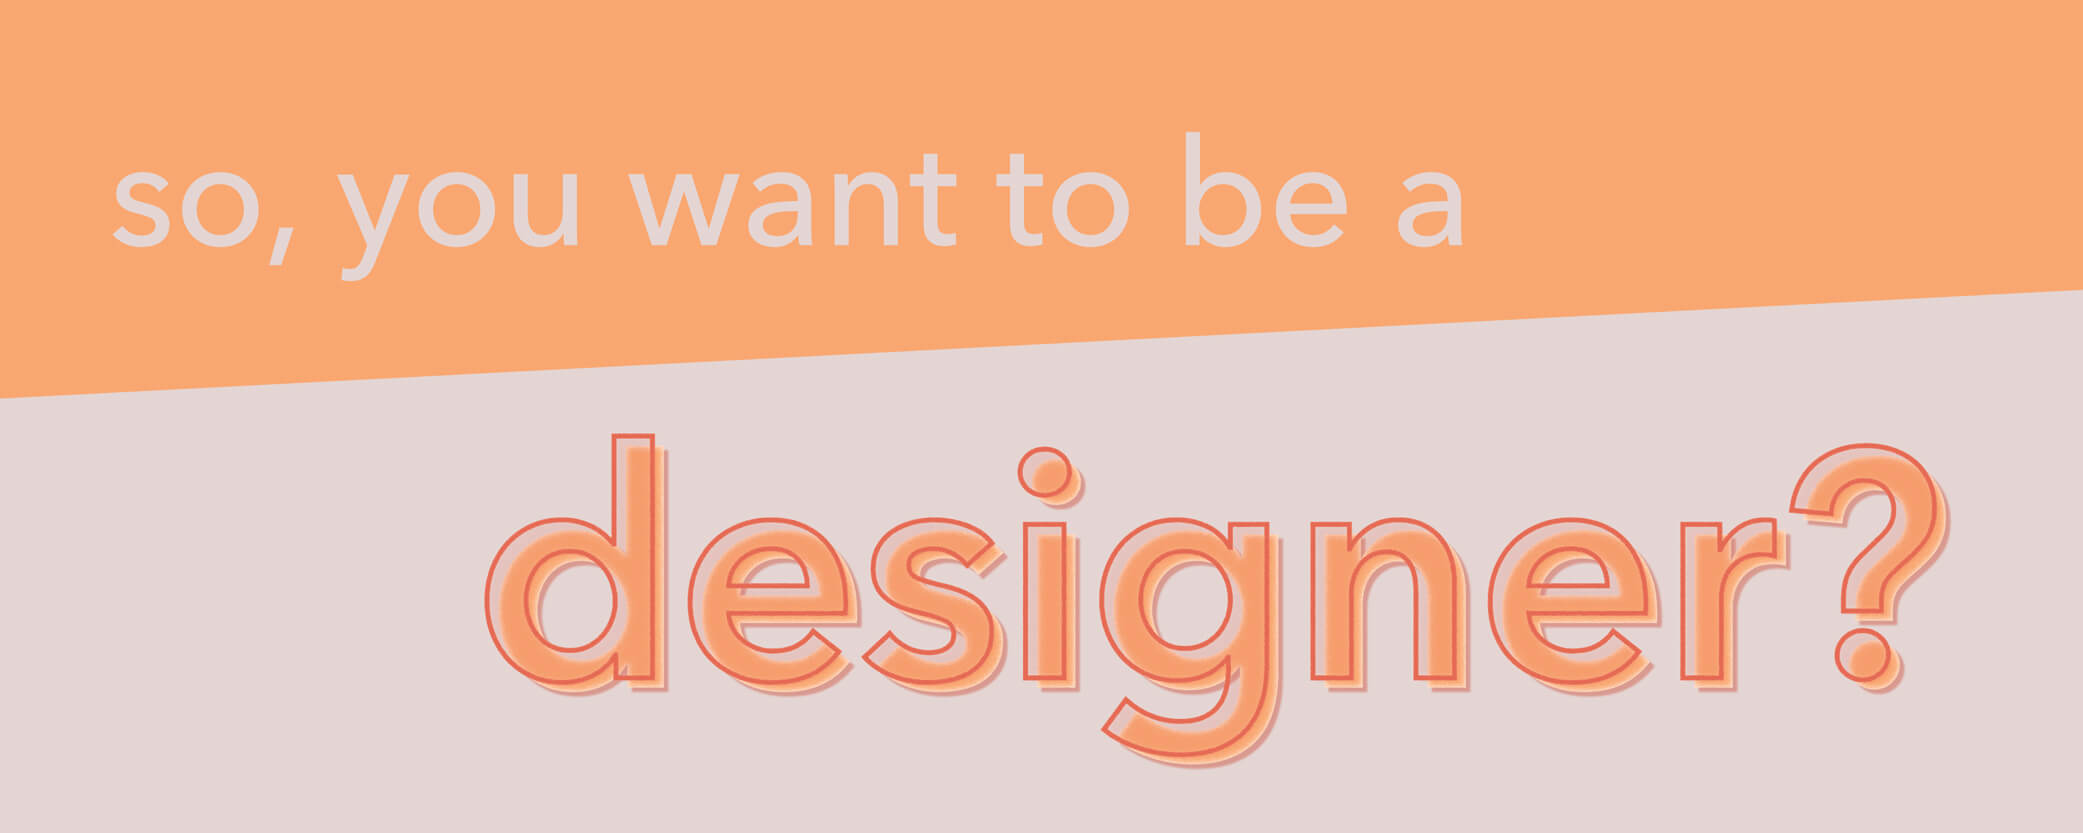 So you want to be a designer blog title.